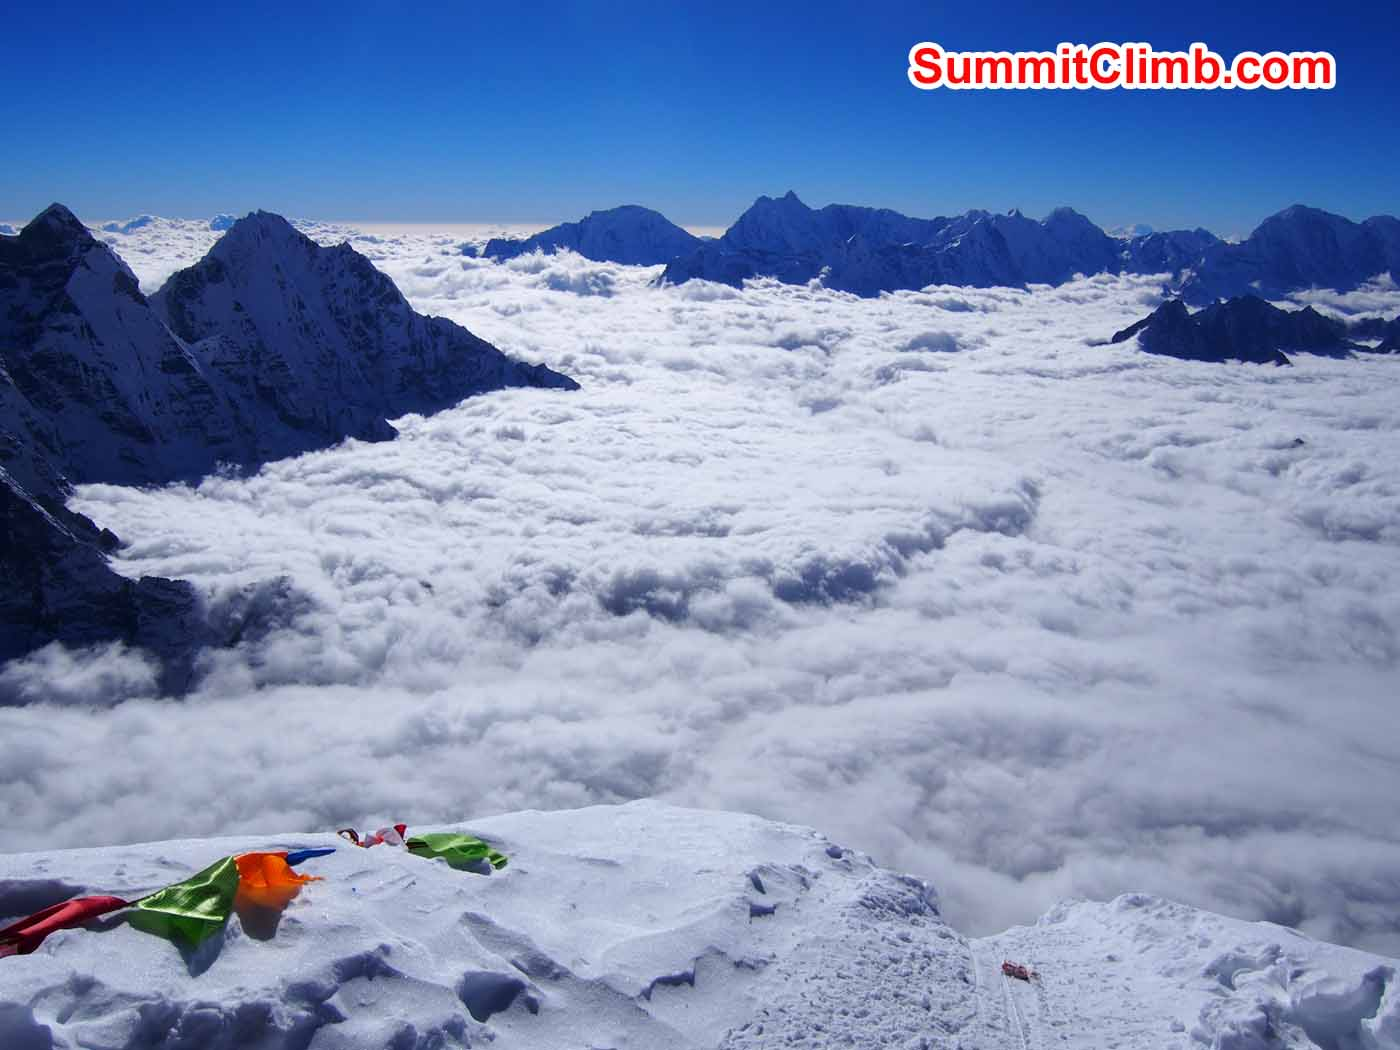 summitclimp photo